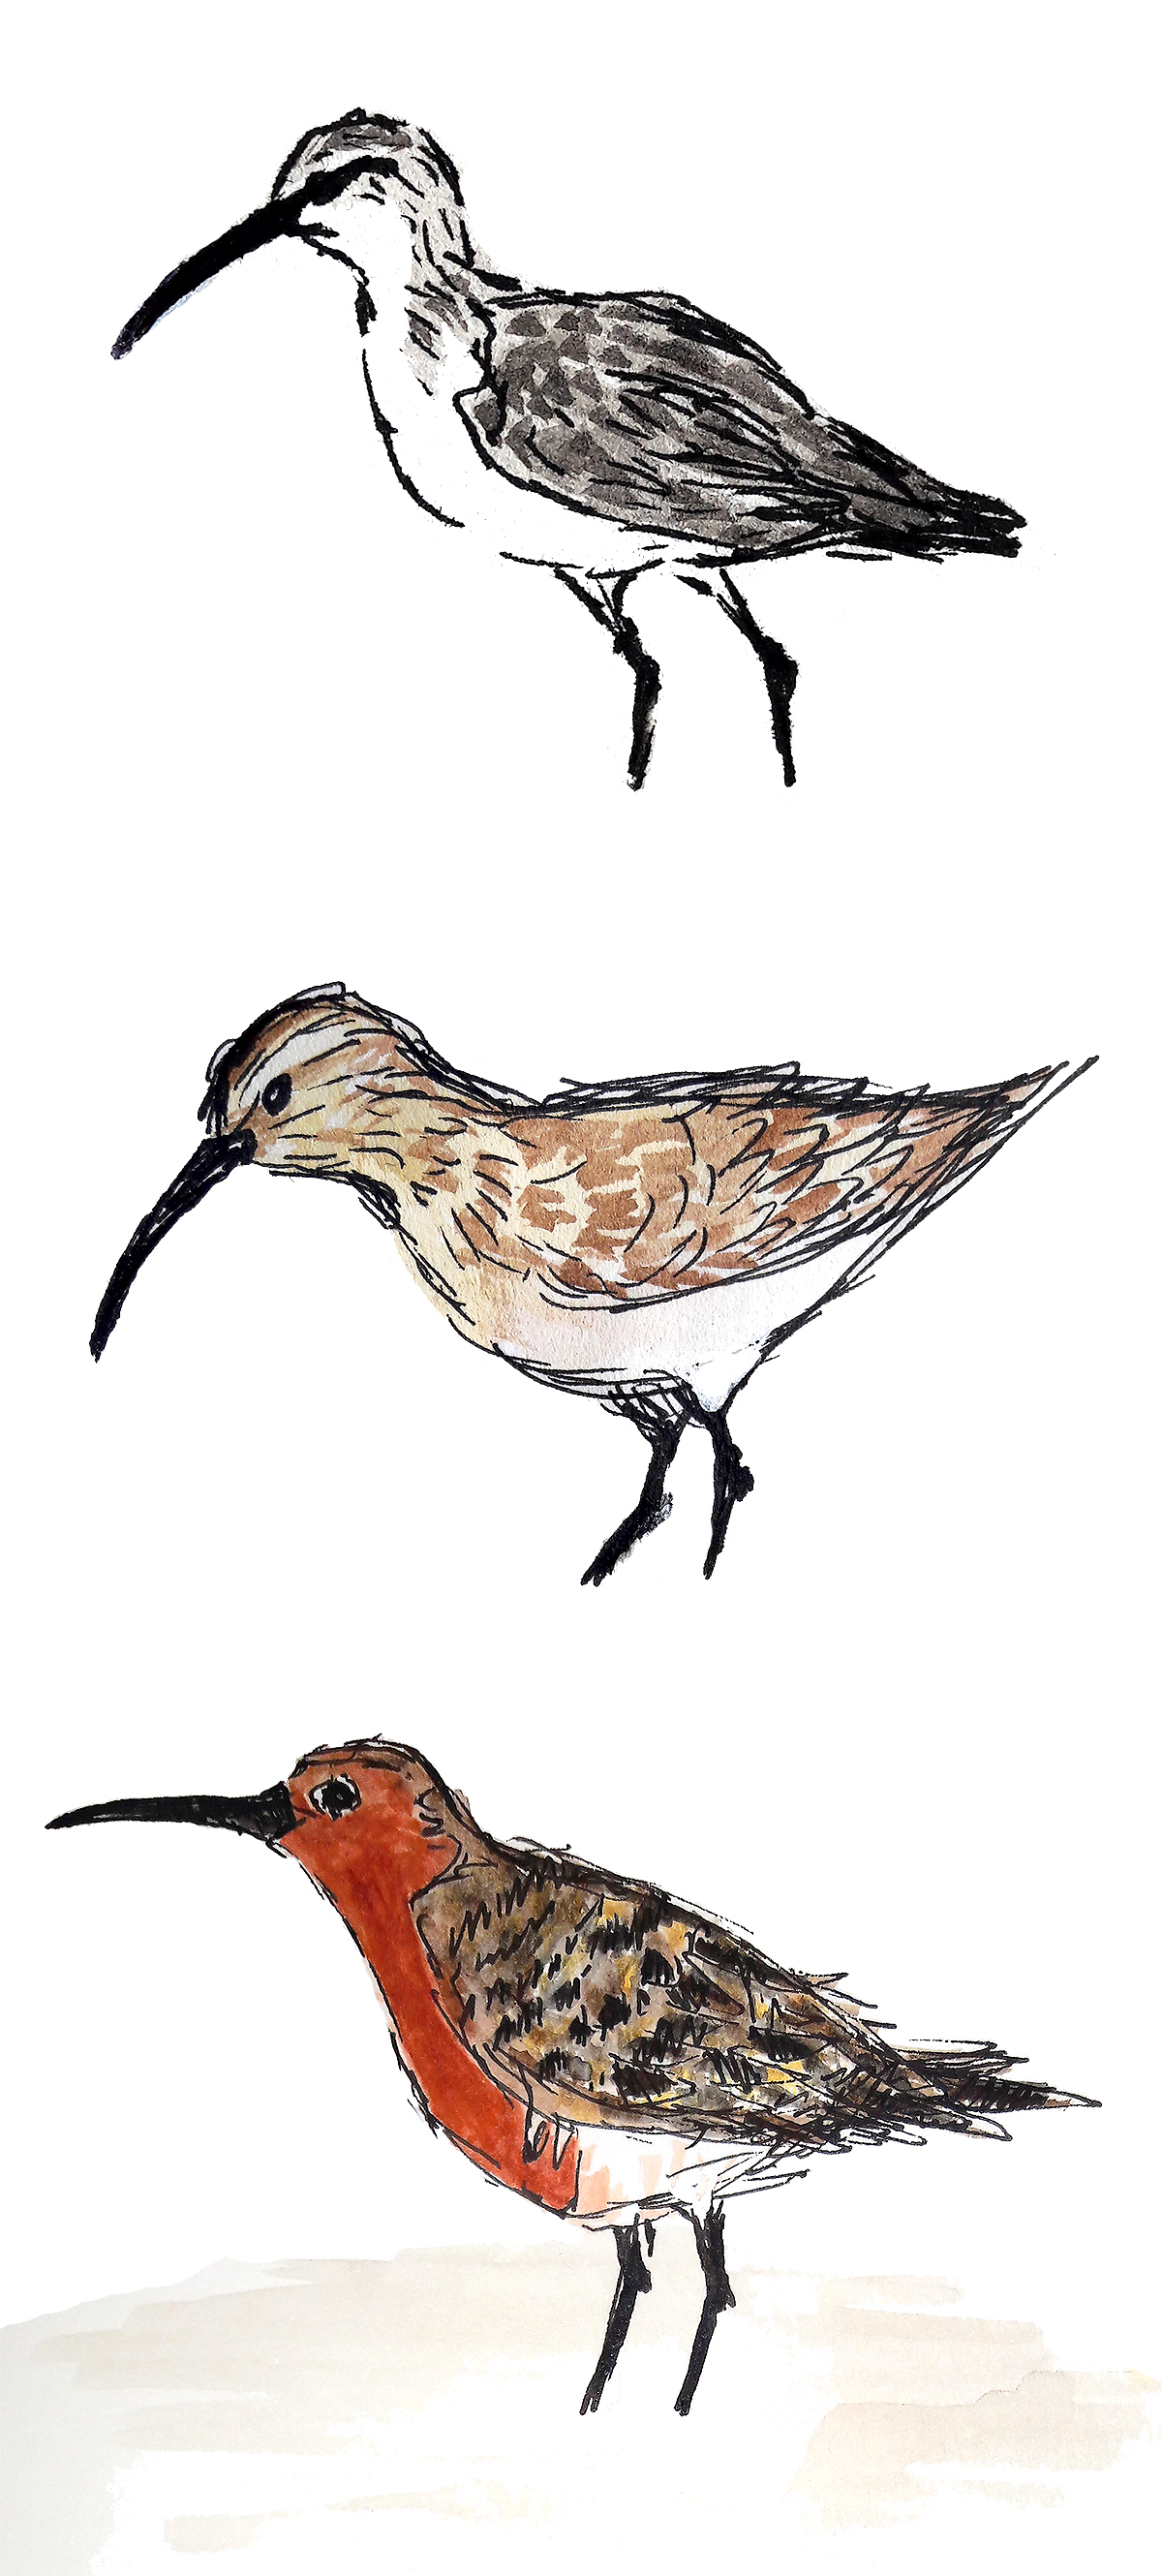 Curlew Sandpiper Calidris ferruginea in winter plumage (top), assuming breeding plumage (middle) and in full breeding plumage (bottom). (Louis-Jean Germain)